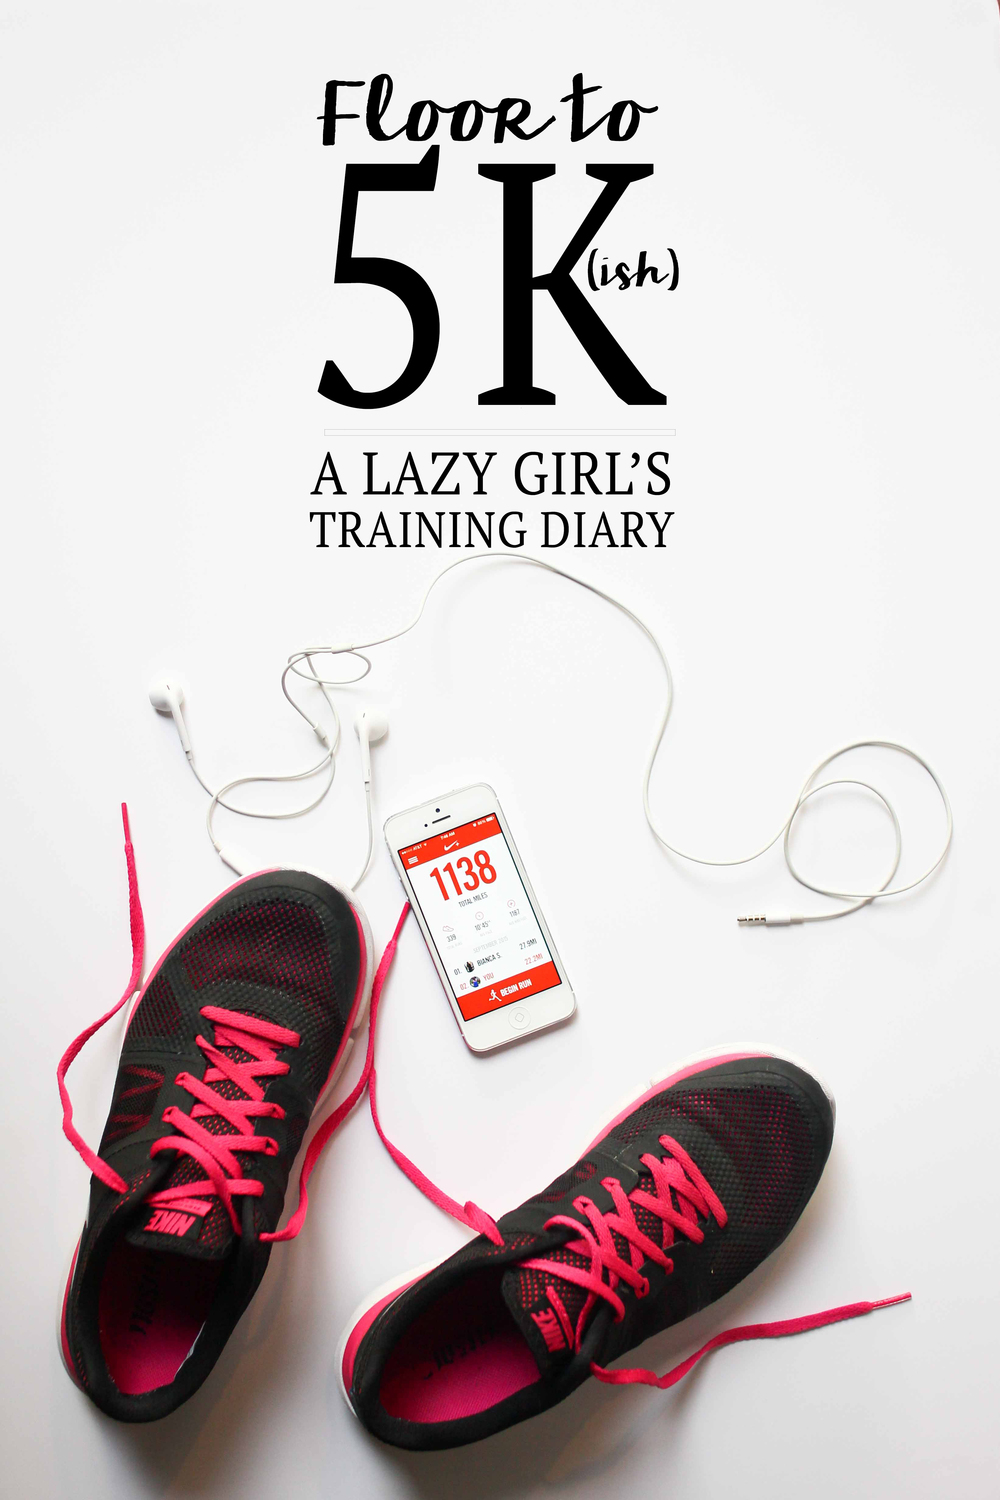 Floor to 5K: Training in One Week